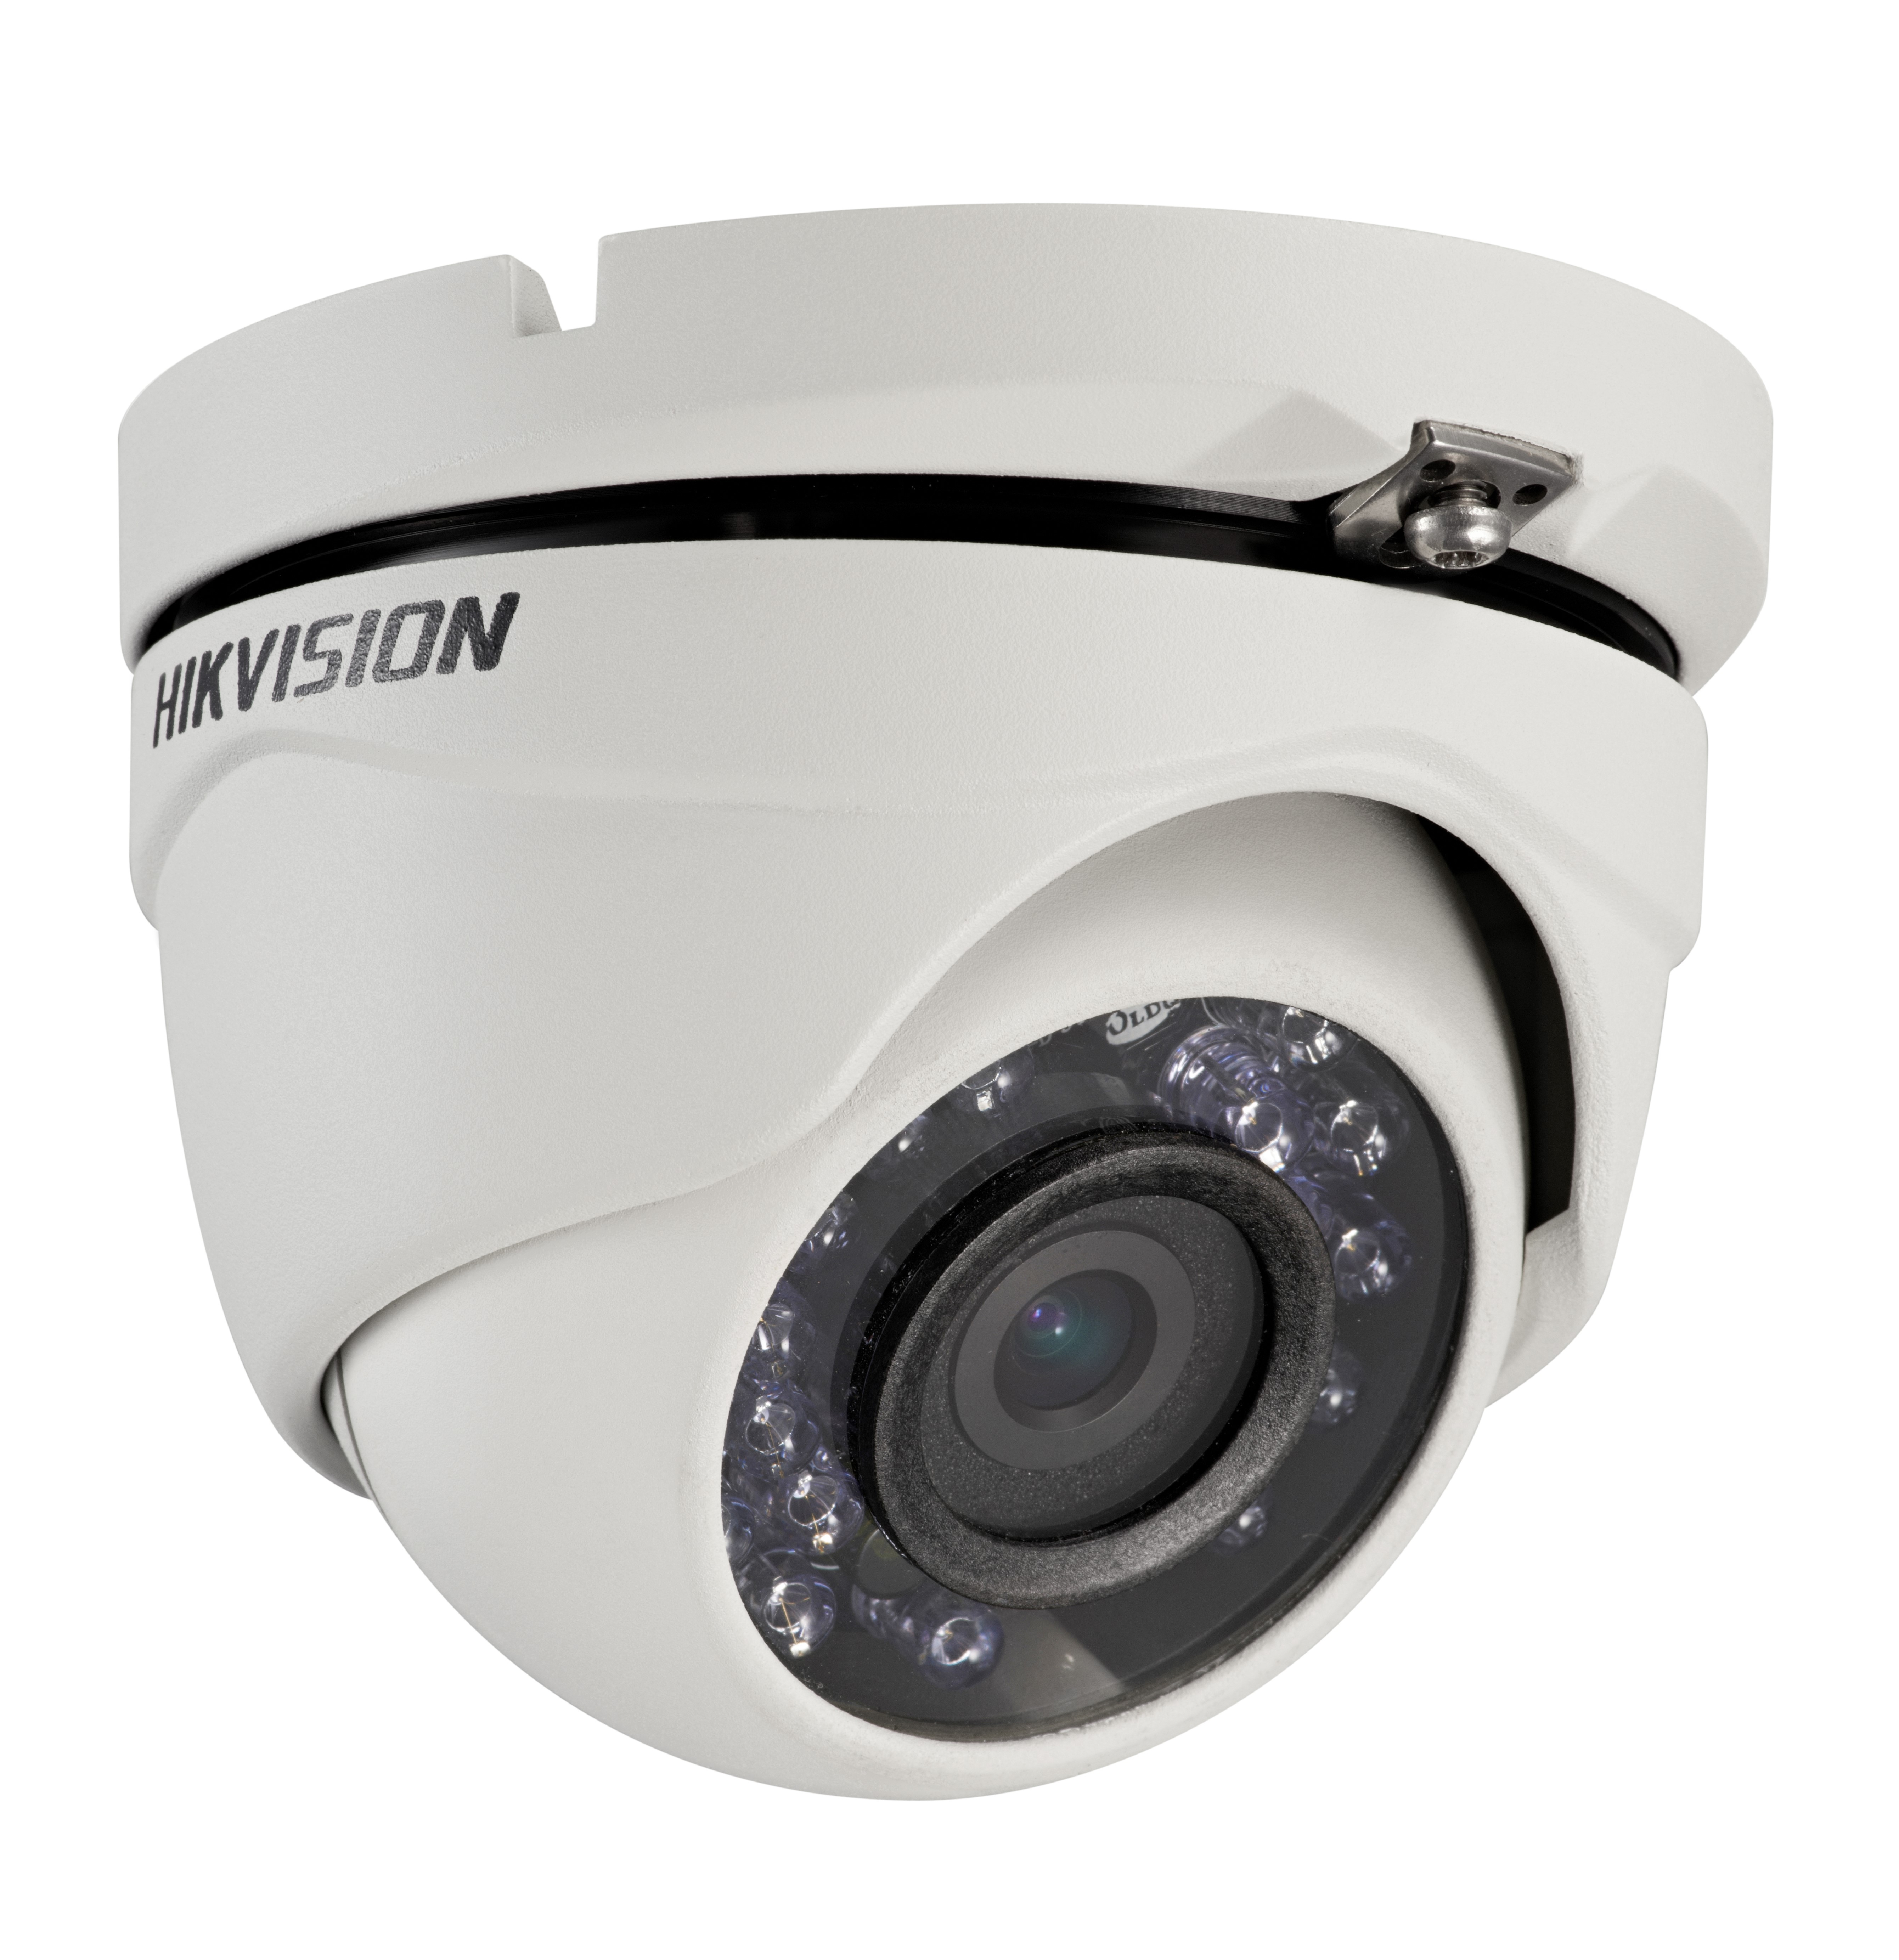 HD 1080p IR Turret Camera